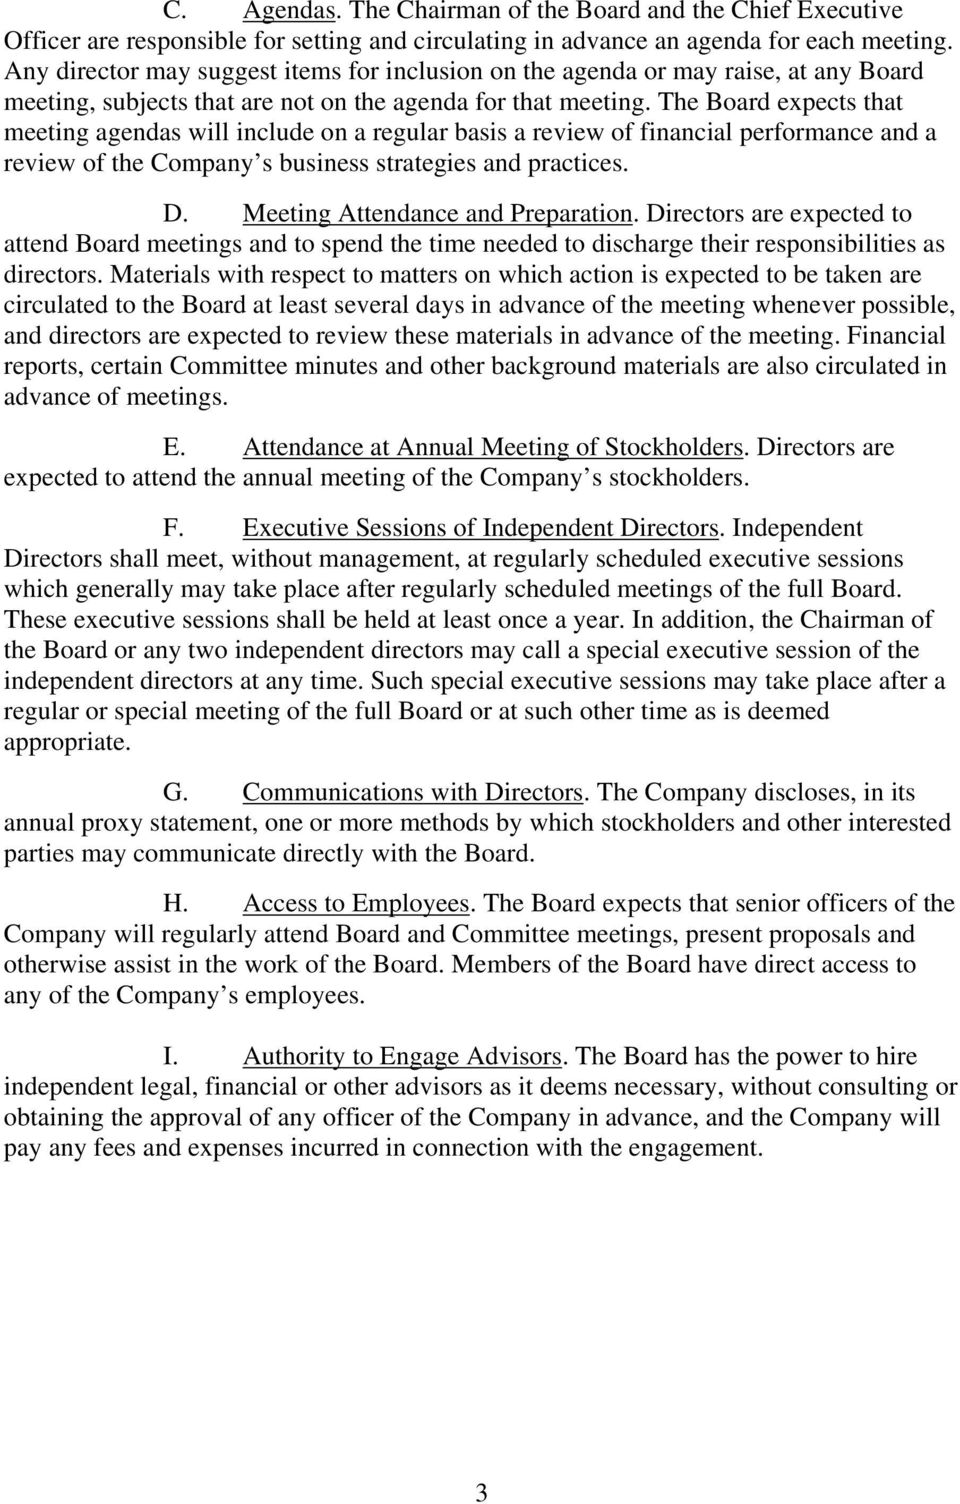 The Board expects that meeting agendas will include on a regular basis a review of financial performance and a review of the Company s business strategies and practices. D.